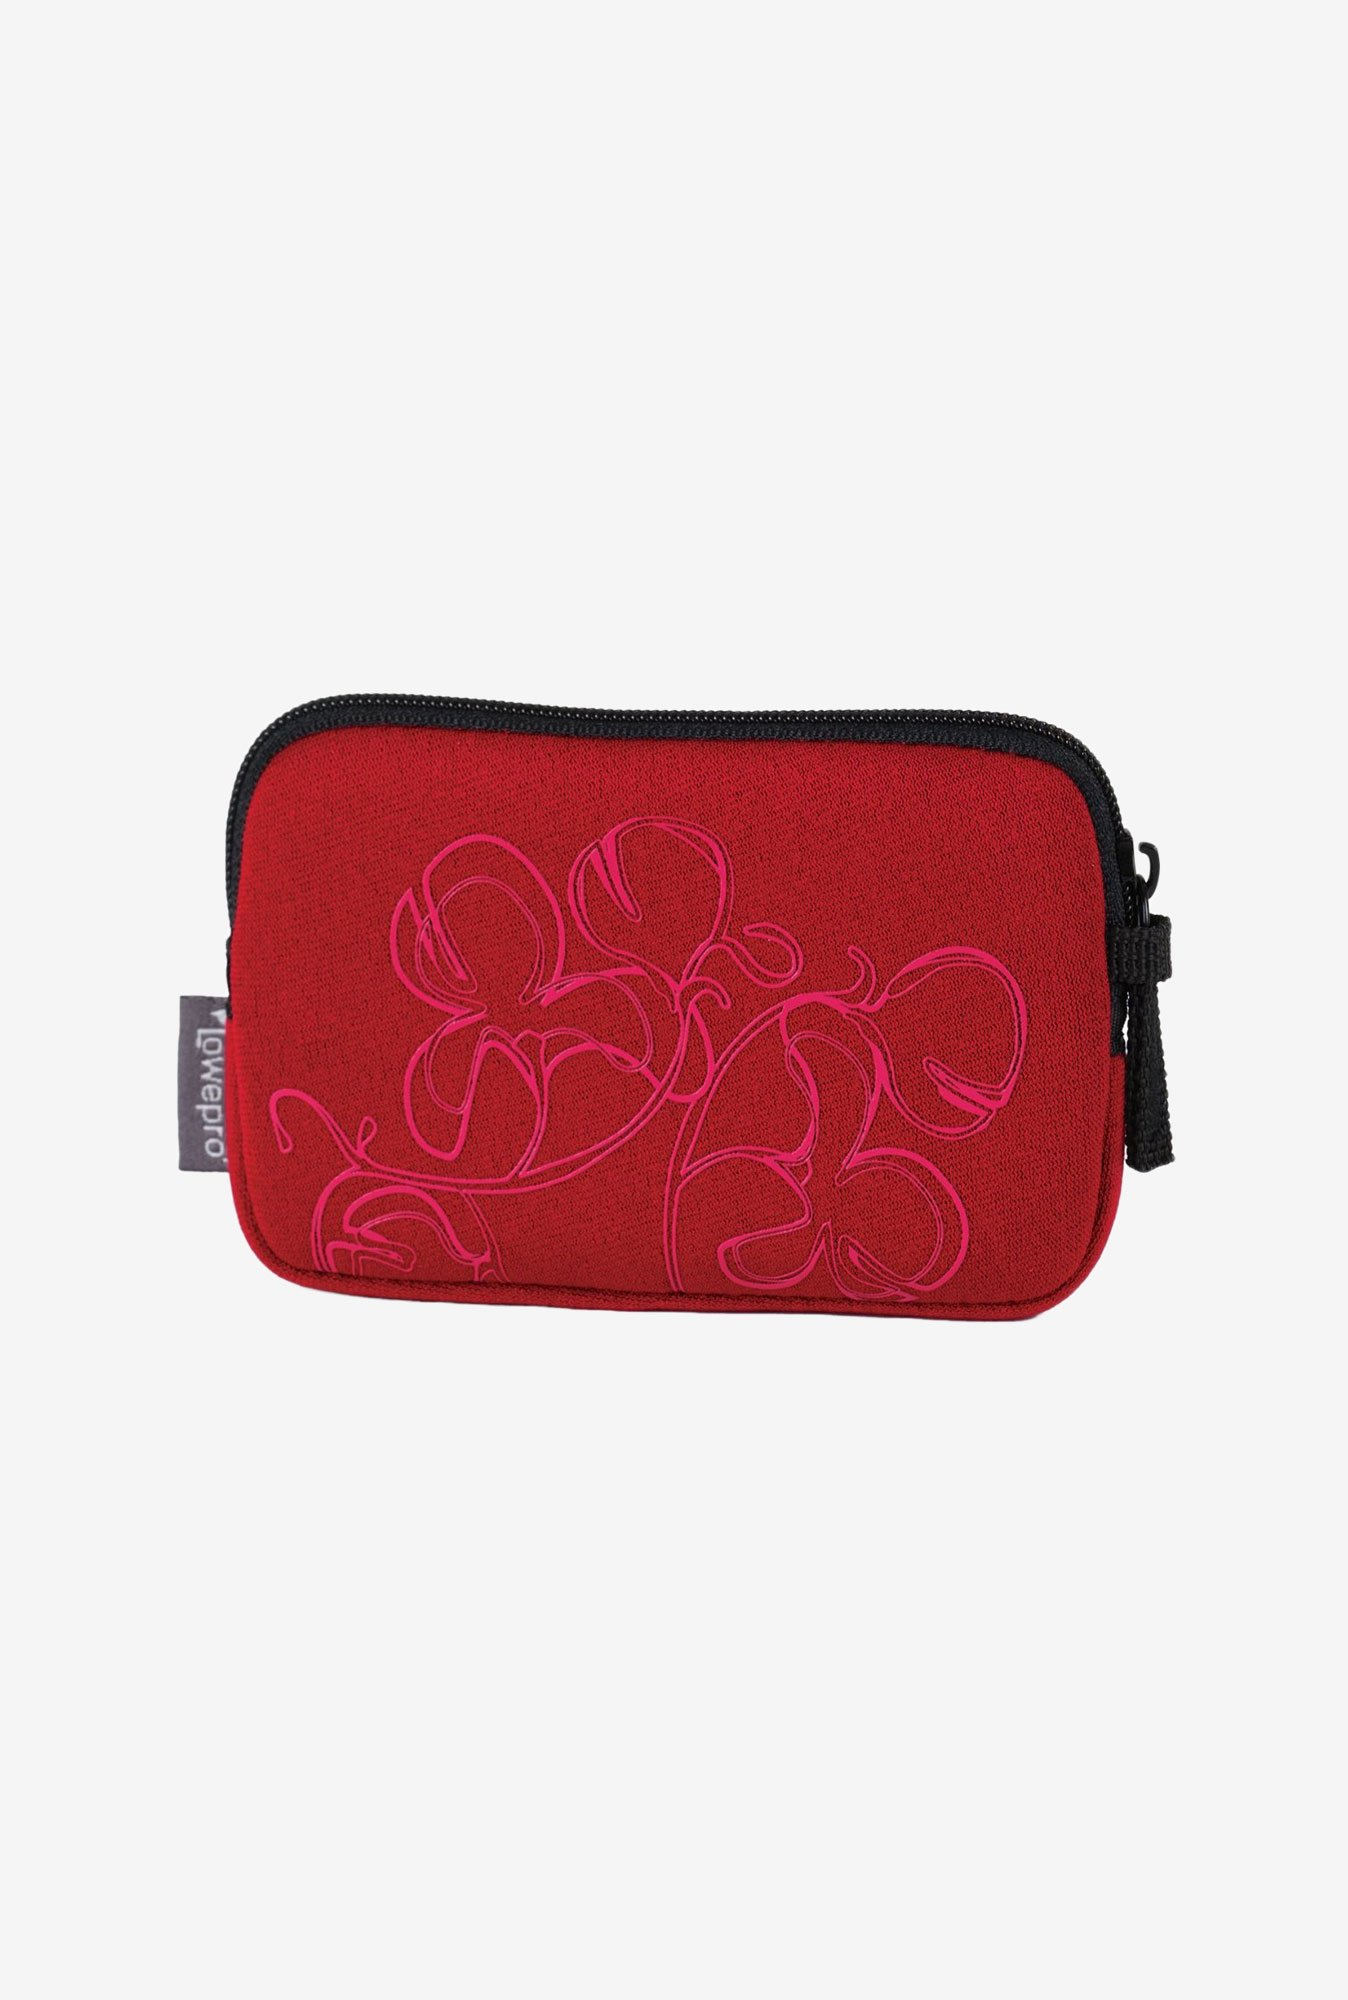 LowePro Melbourne 10 Camera Pouch (Red Floral)